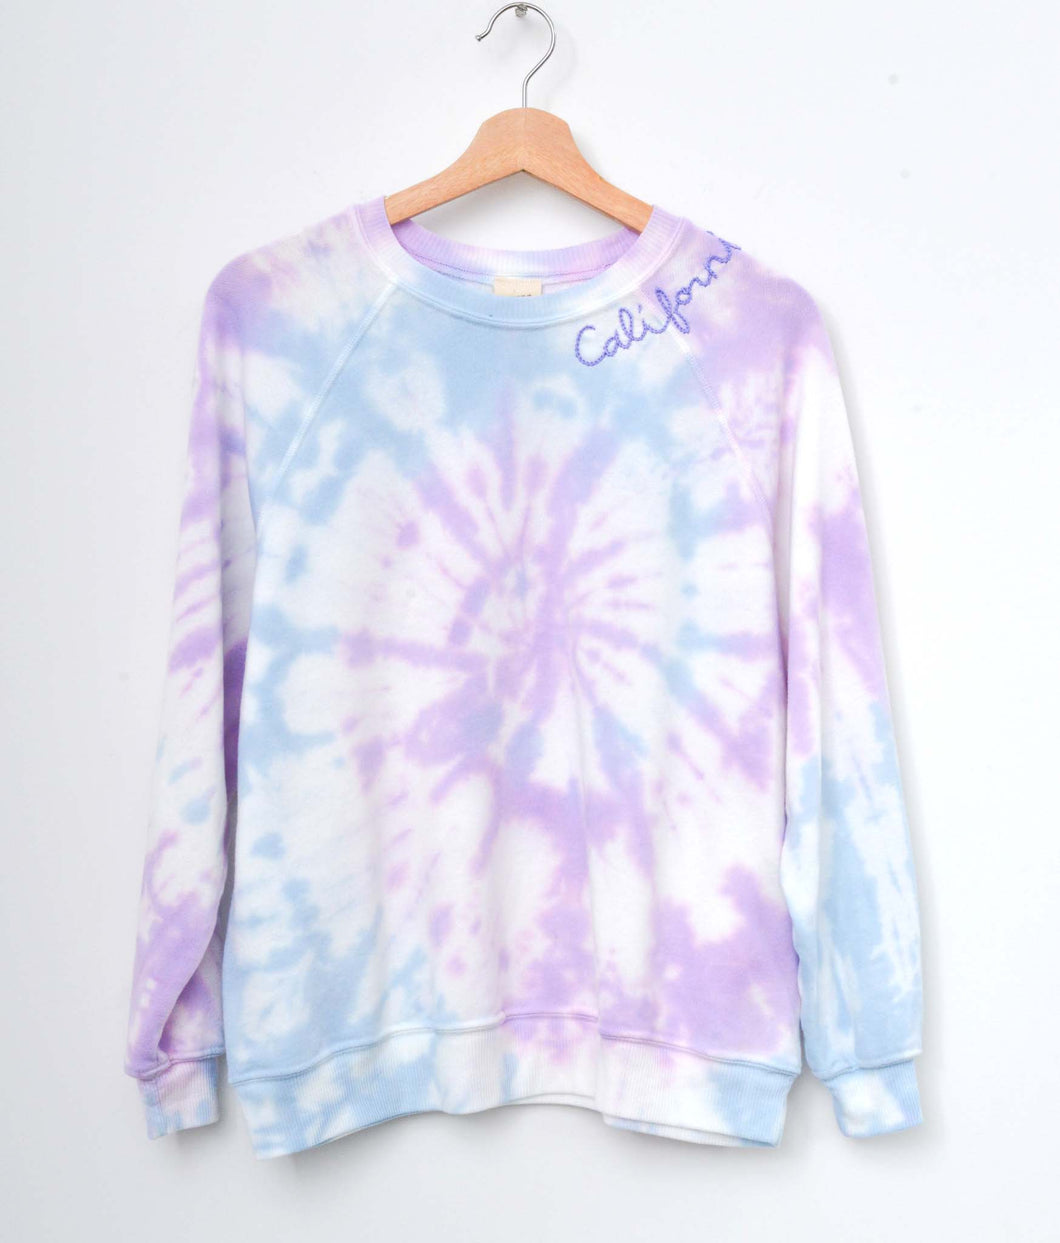 Coachella Swirl Tie Dyed Sweatshirt- Lilac Breeze